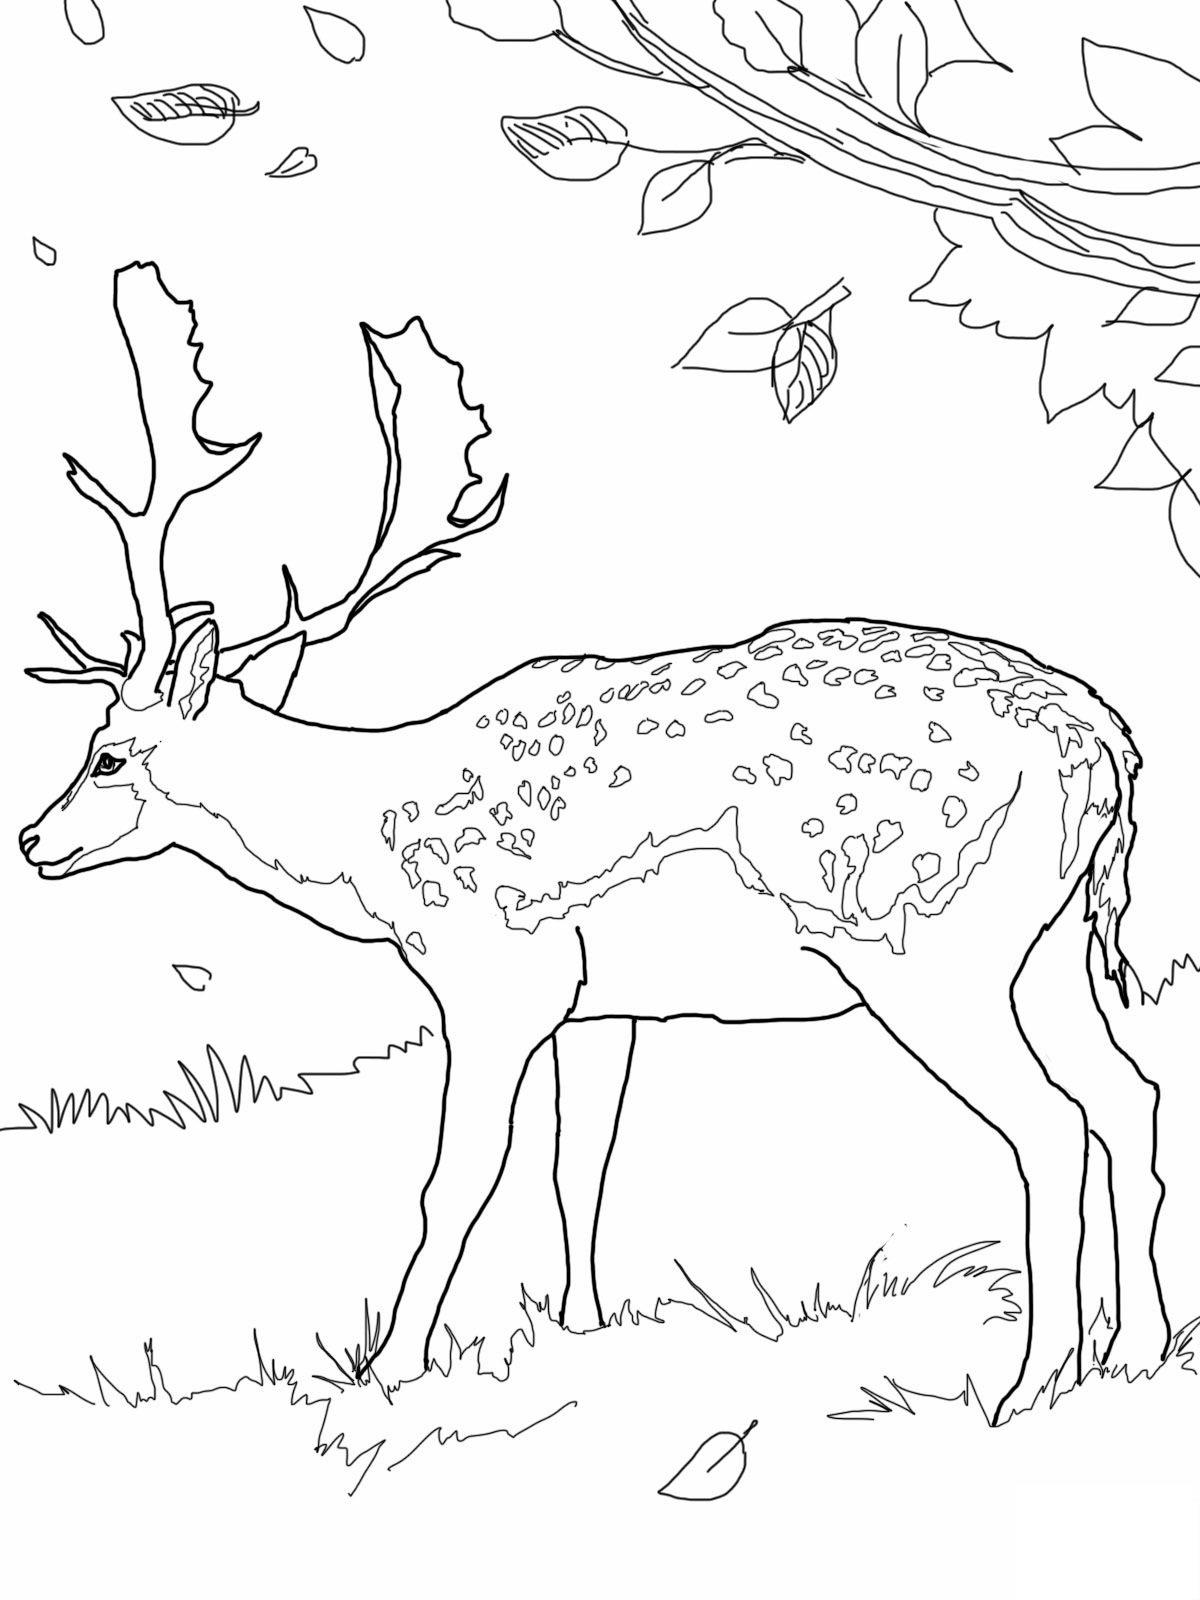 deer coloring pages - photo#22